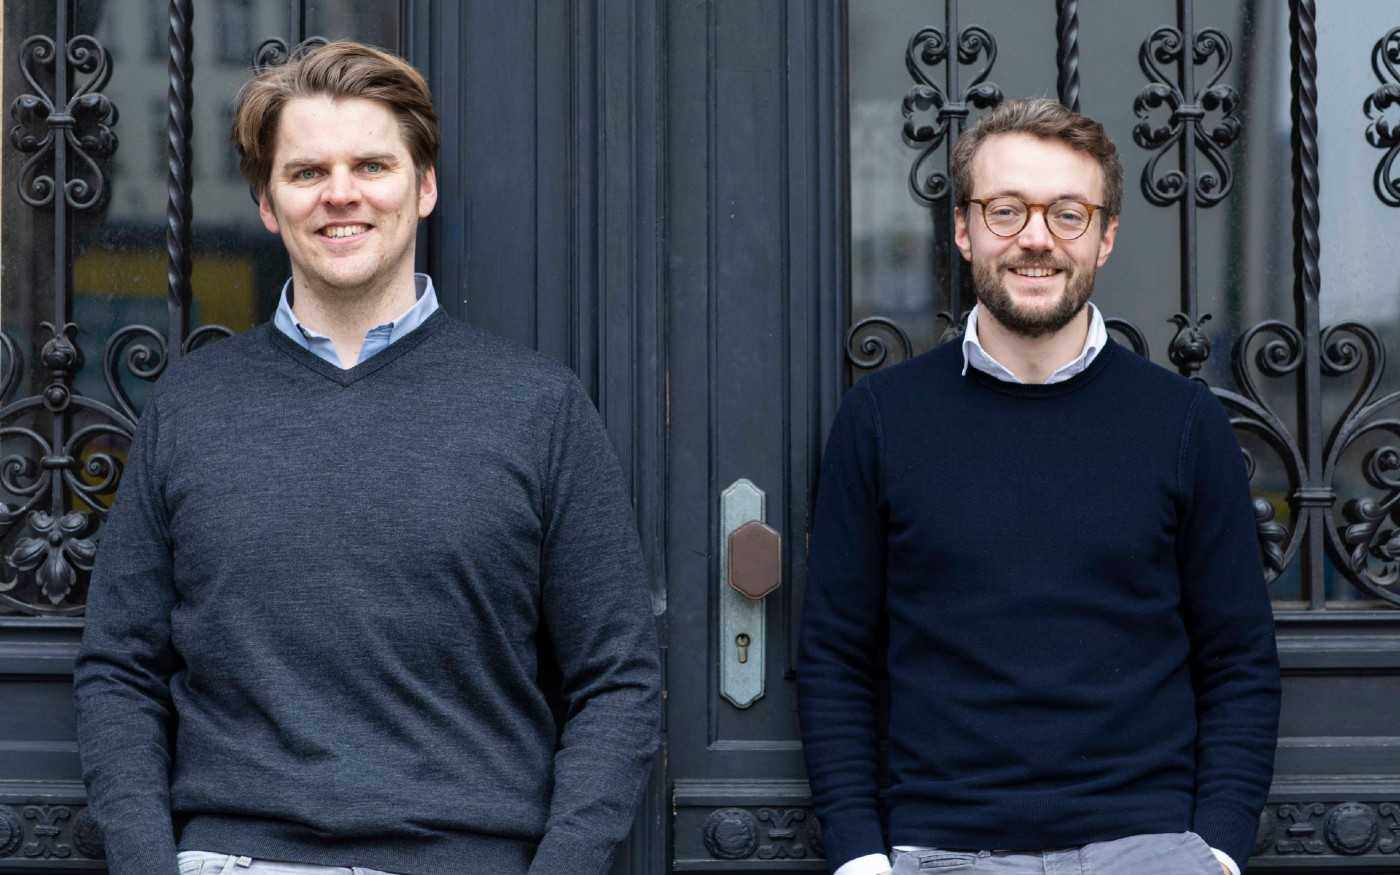 SuitePad Founders Moritz von Petersdorff-Campen and Tilmann Volk